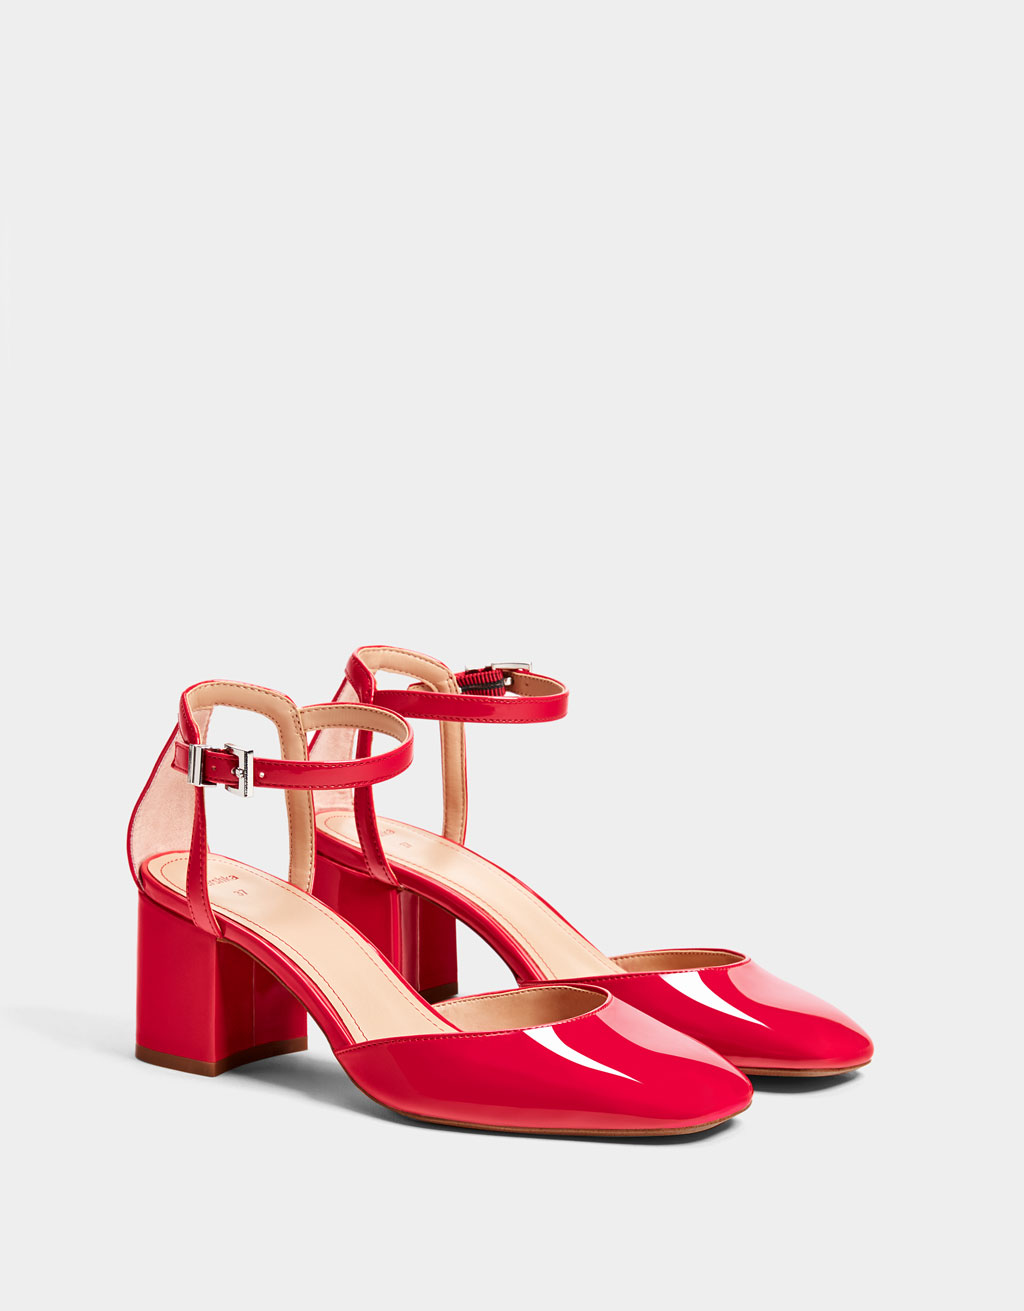 Faux red patent leather mid-heel shoes